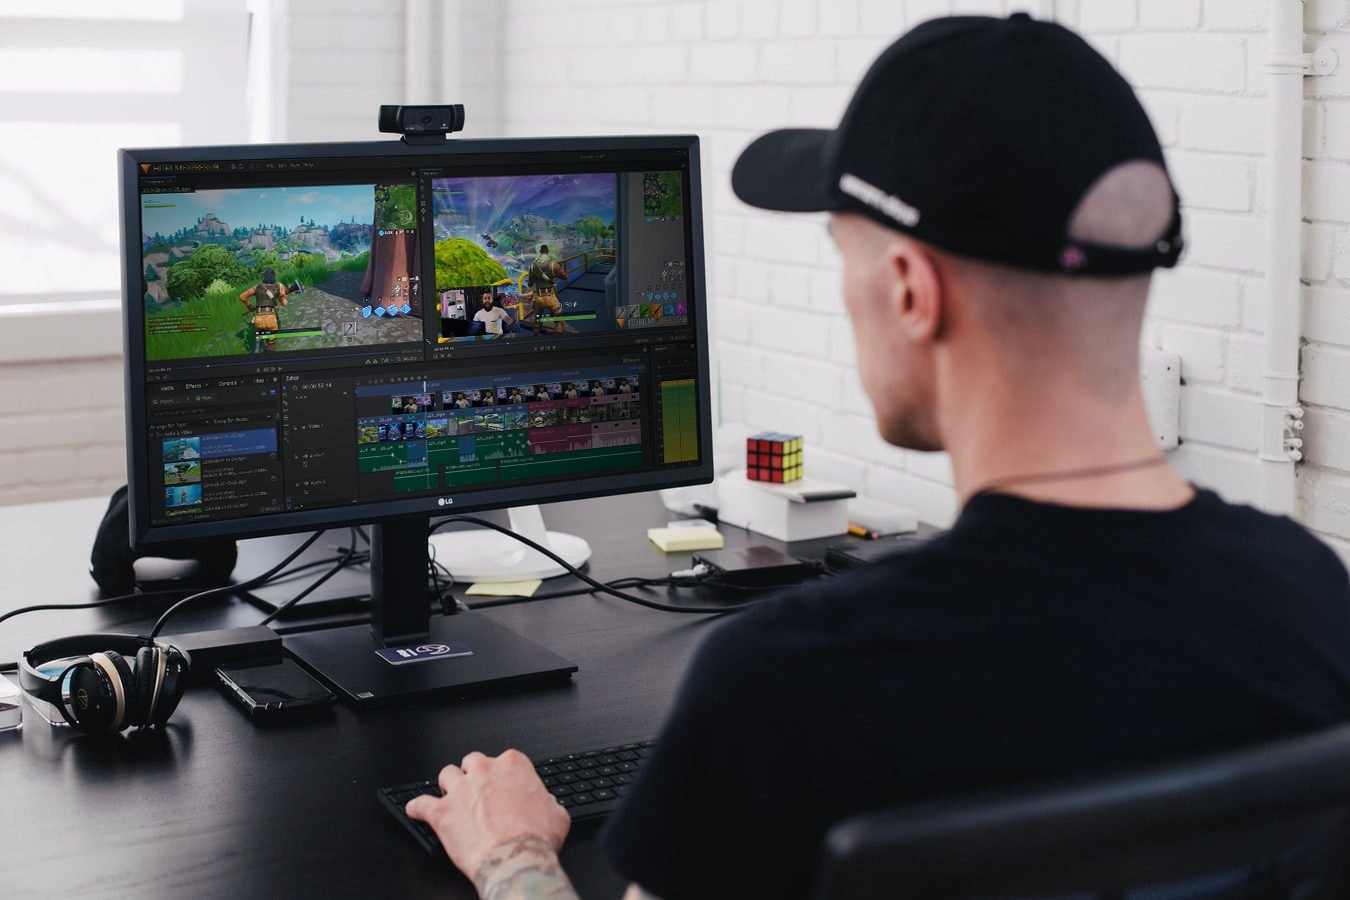 YouTuber editing a Fortnite gaming video in HitFilm Express free video editing software